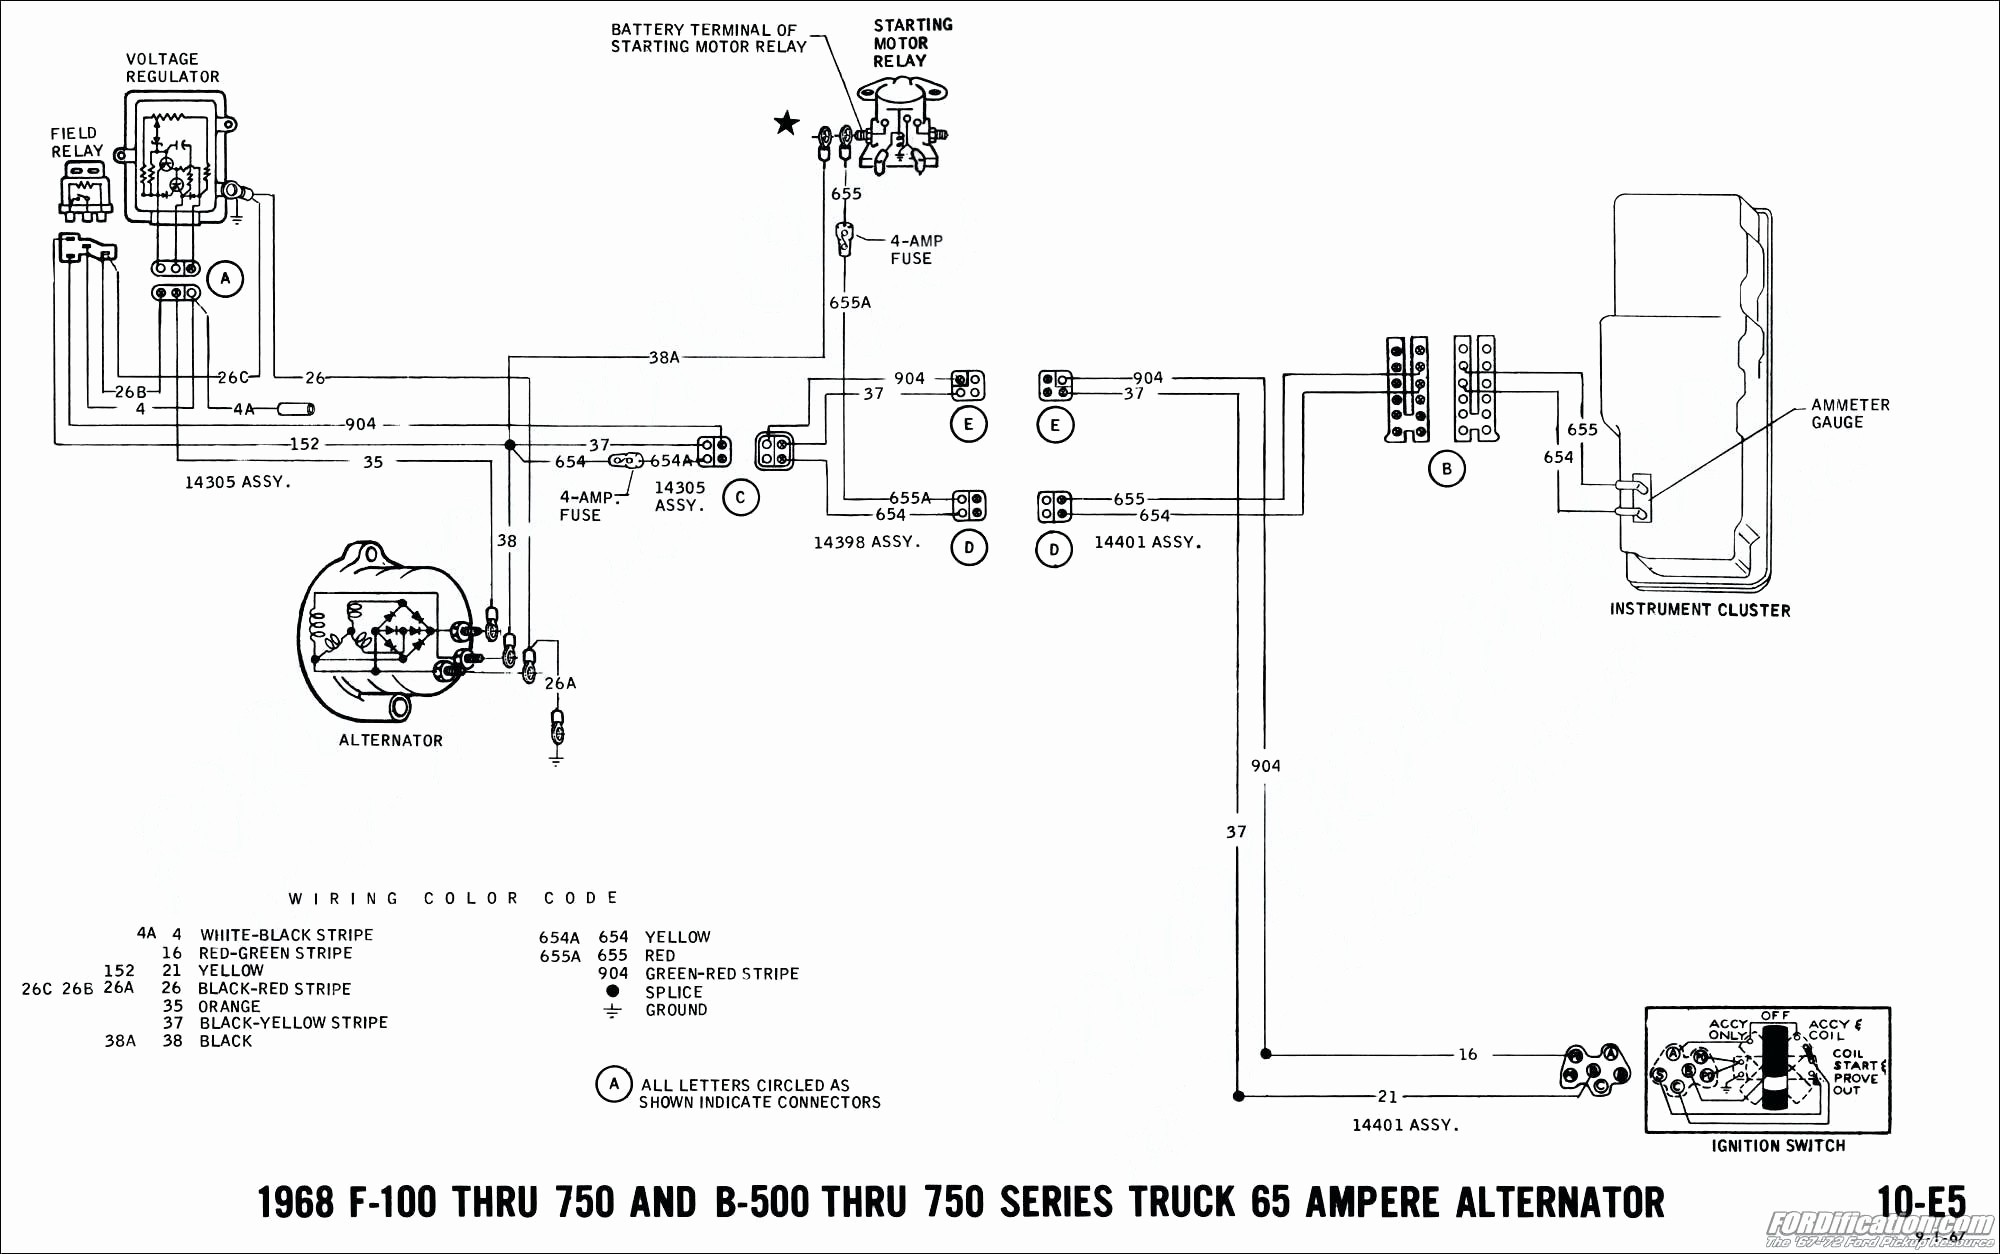 Ford Truck Steering Column Diagram 1973 ford F 250 Wiring Diagram Books Wiring Diagram • Of Ford Truck Steering Column Diagram